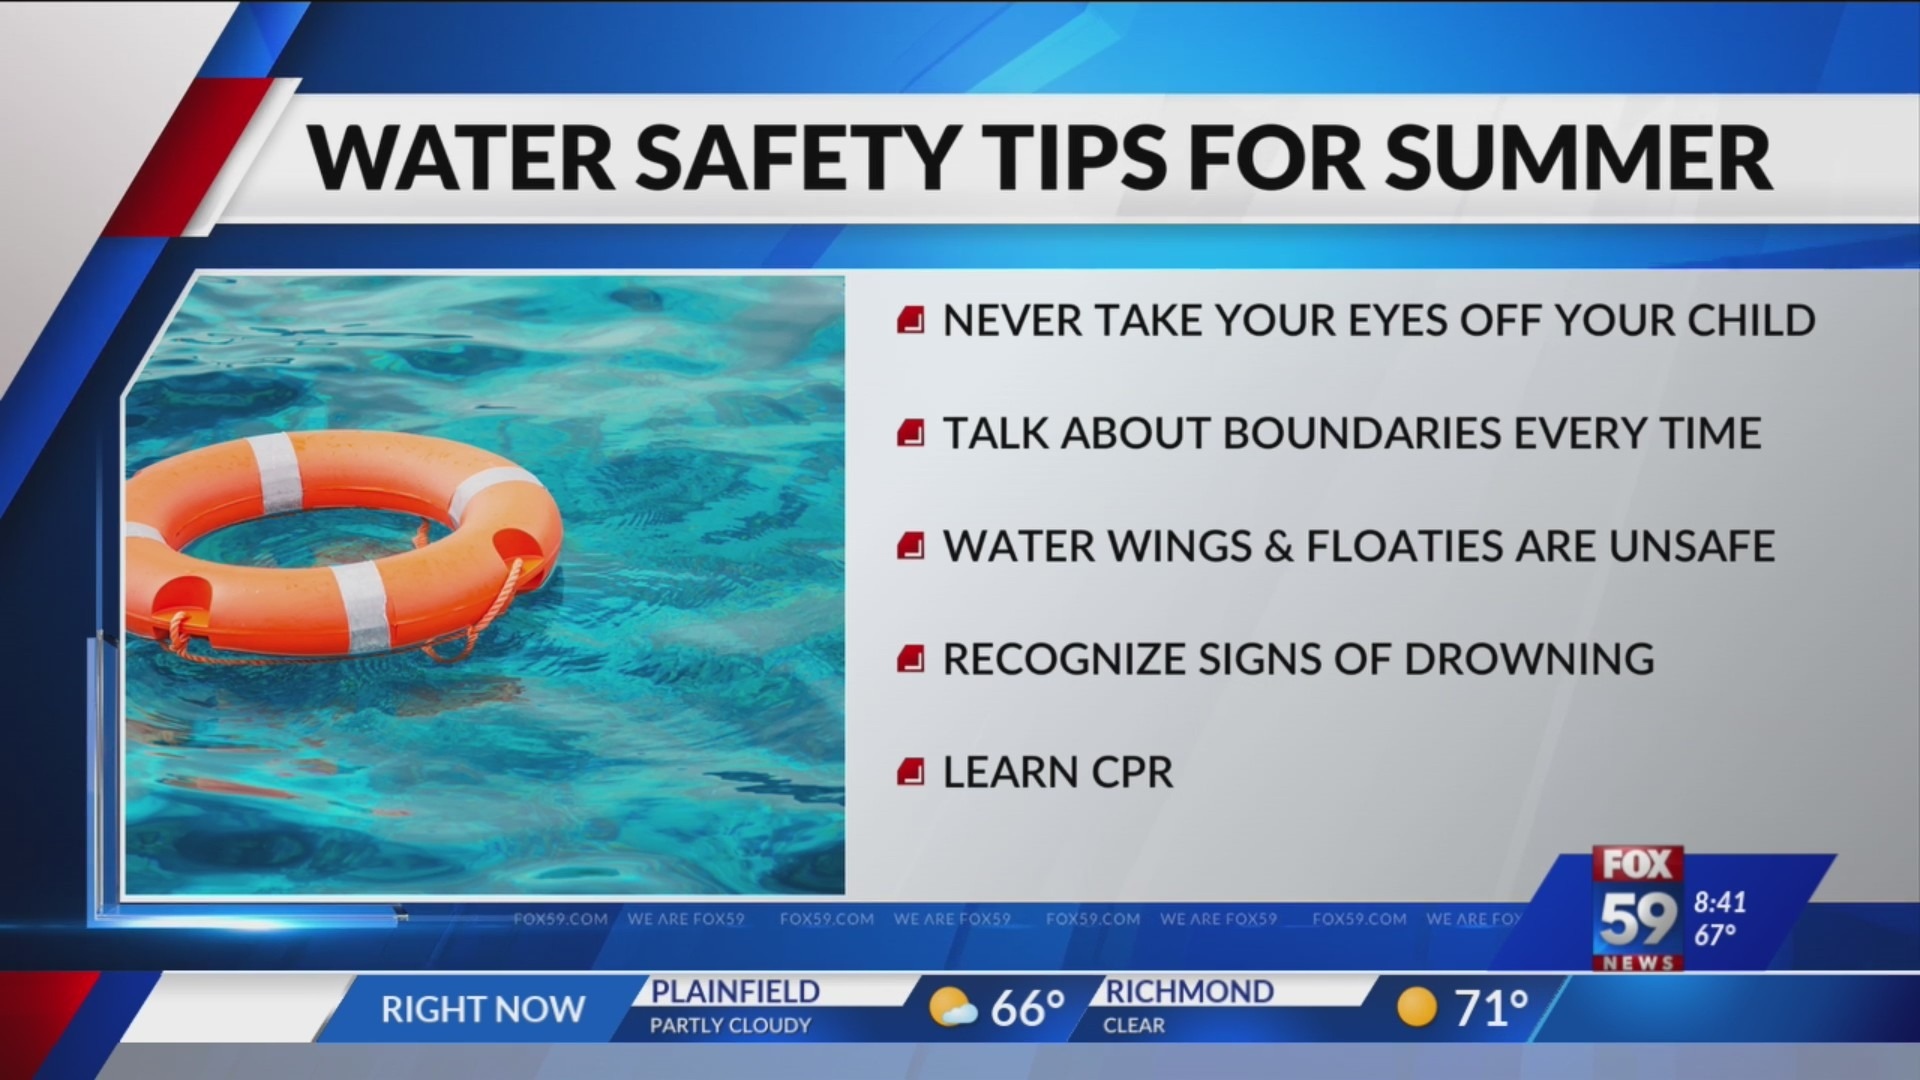 Swimming safety tips for parents watching kids in pool, water